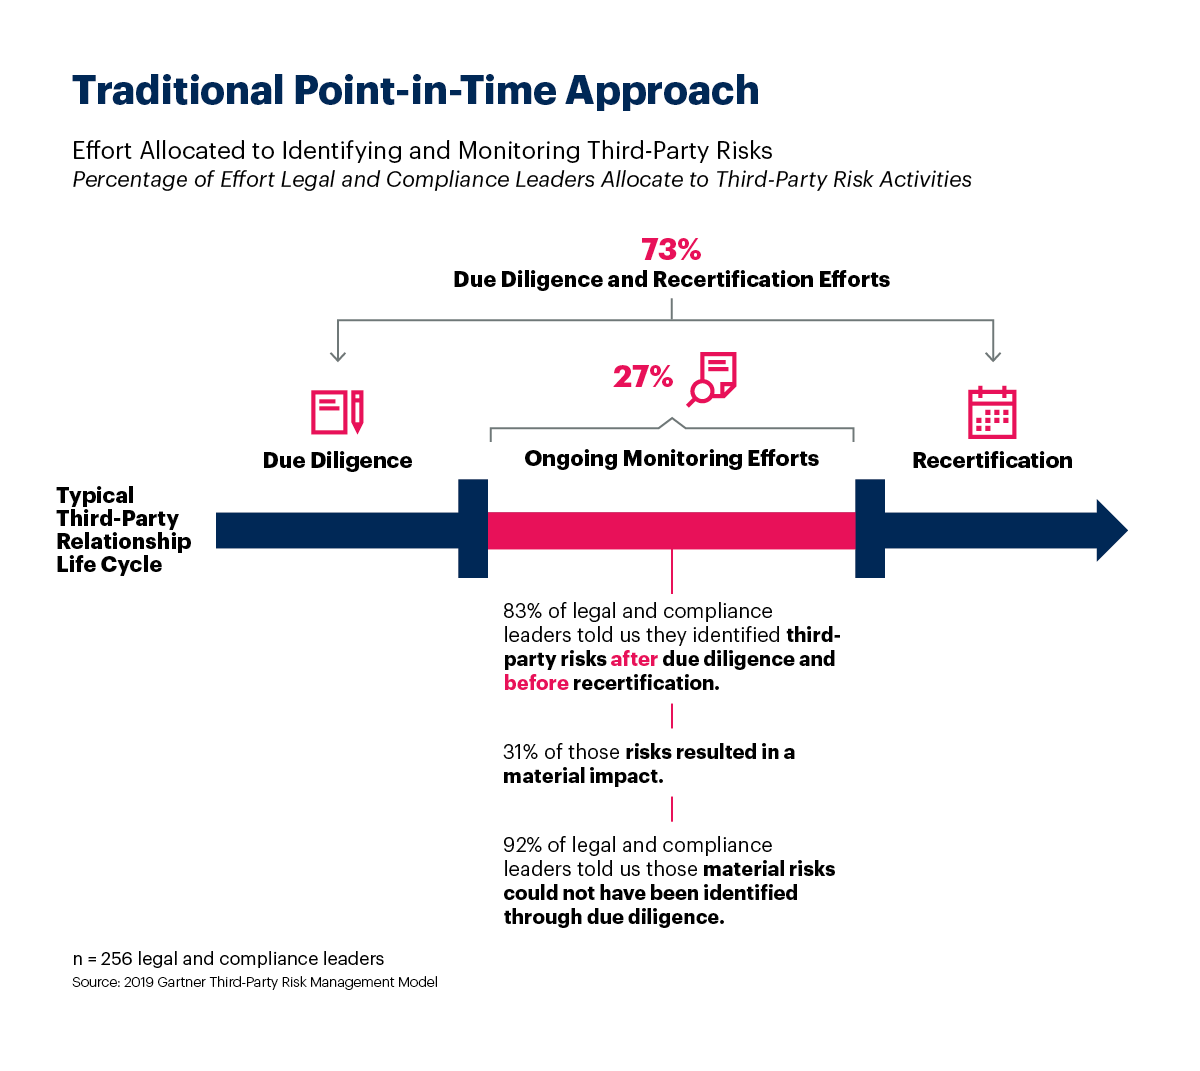 Gartner finds the traditional point-in-time approach fails for third party risk